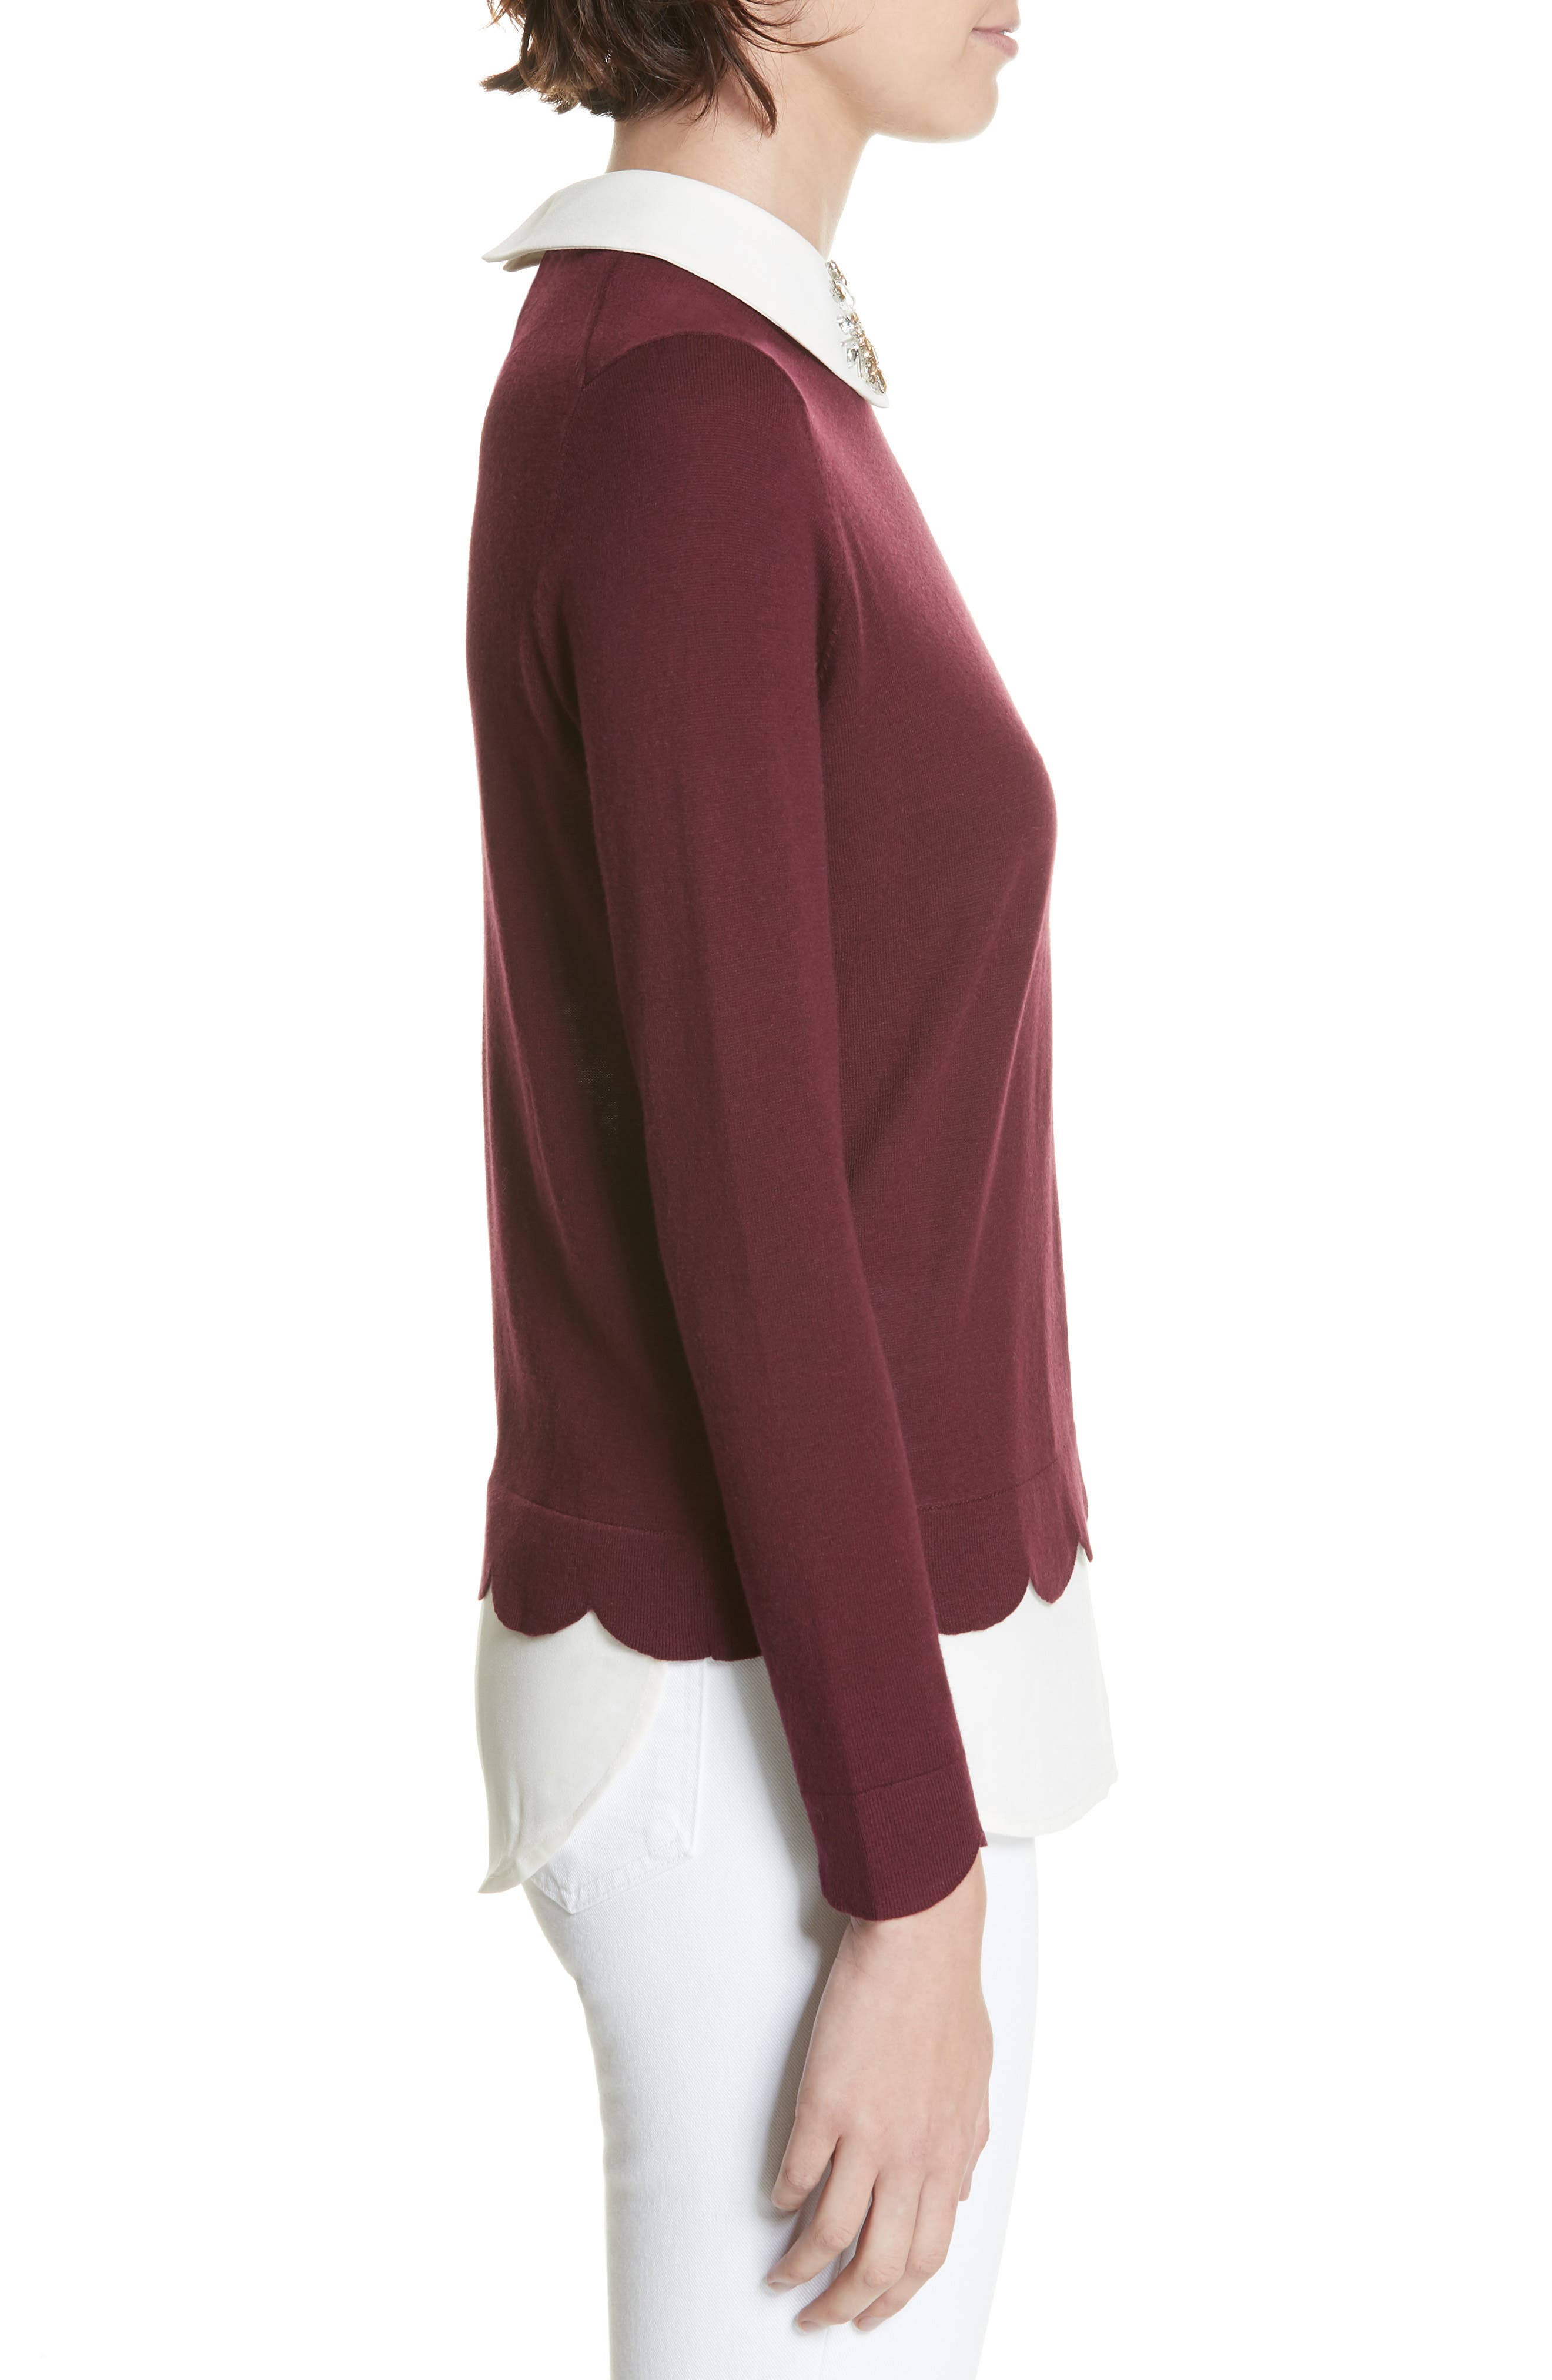 Suzaine Layered Sweater,                             Alternate thumbnail 3, color,                             MAROON